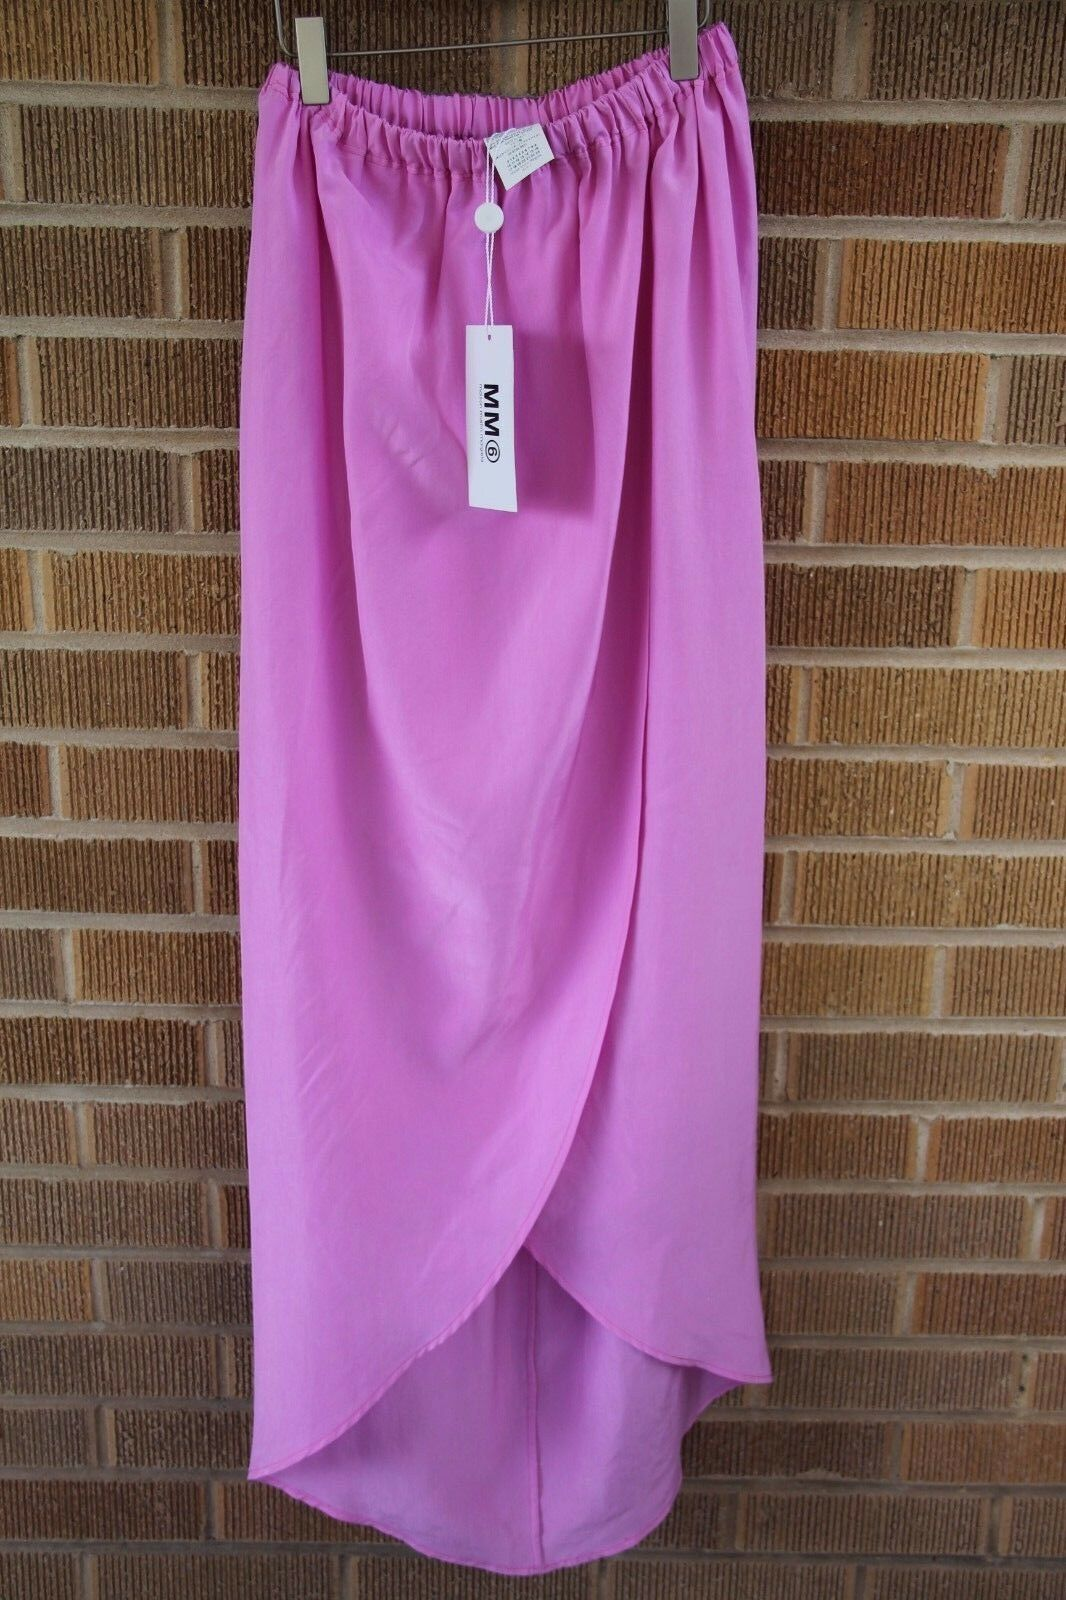 NWTMM6 Maison Martin MargielaNeon Berry Congreenible Silk Skirt36  US XS 530